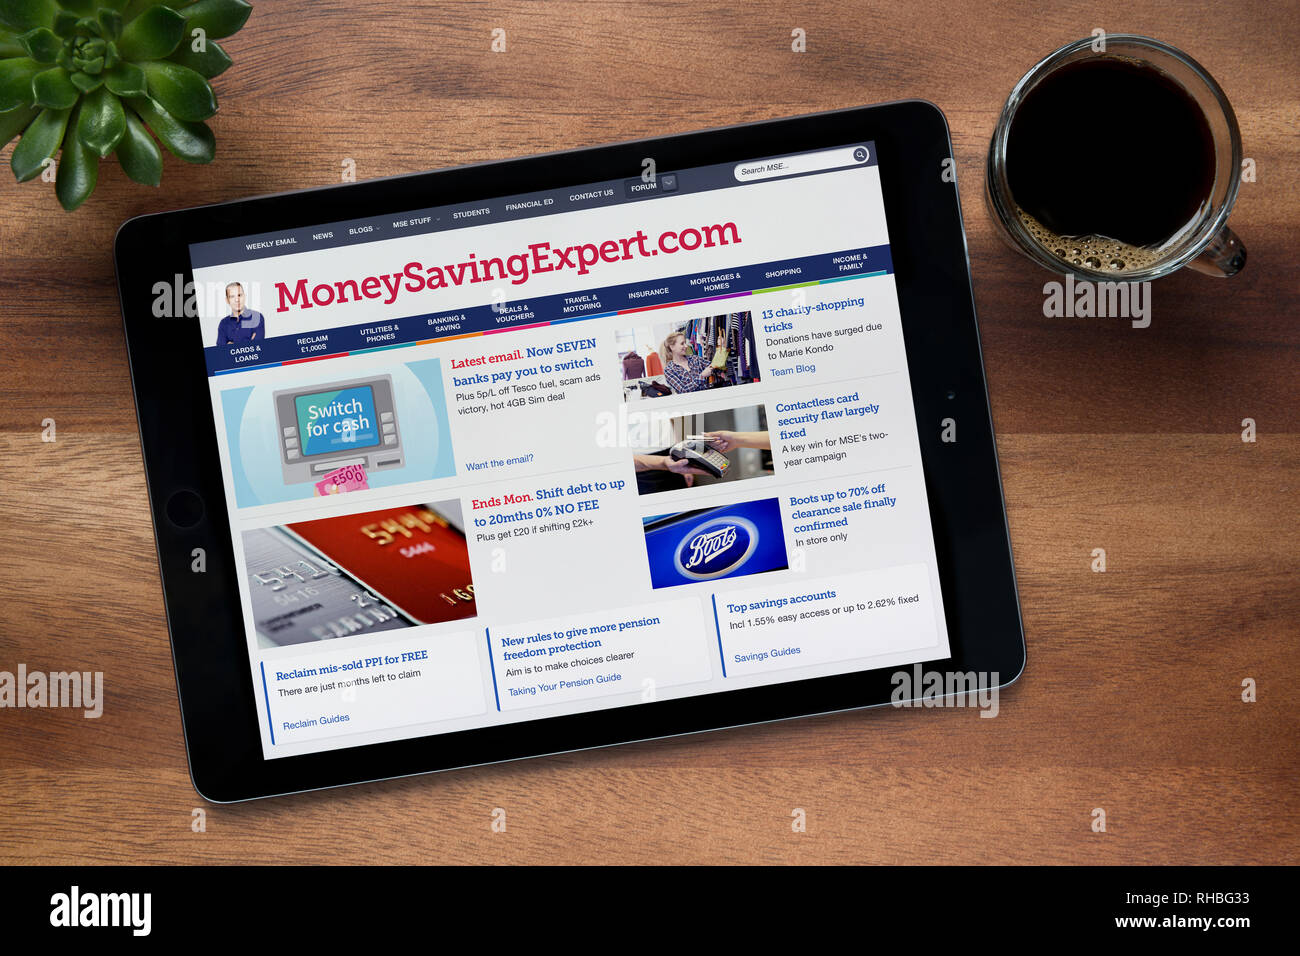 The website of MoneySavingExpert is seen on an iPad tablet, on a wooden table along with an espresso coffee and a house plant (Editorial use only). Stock Photo